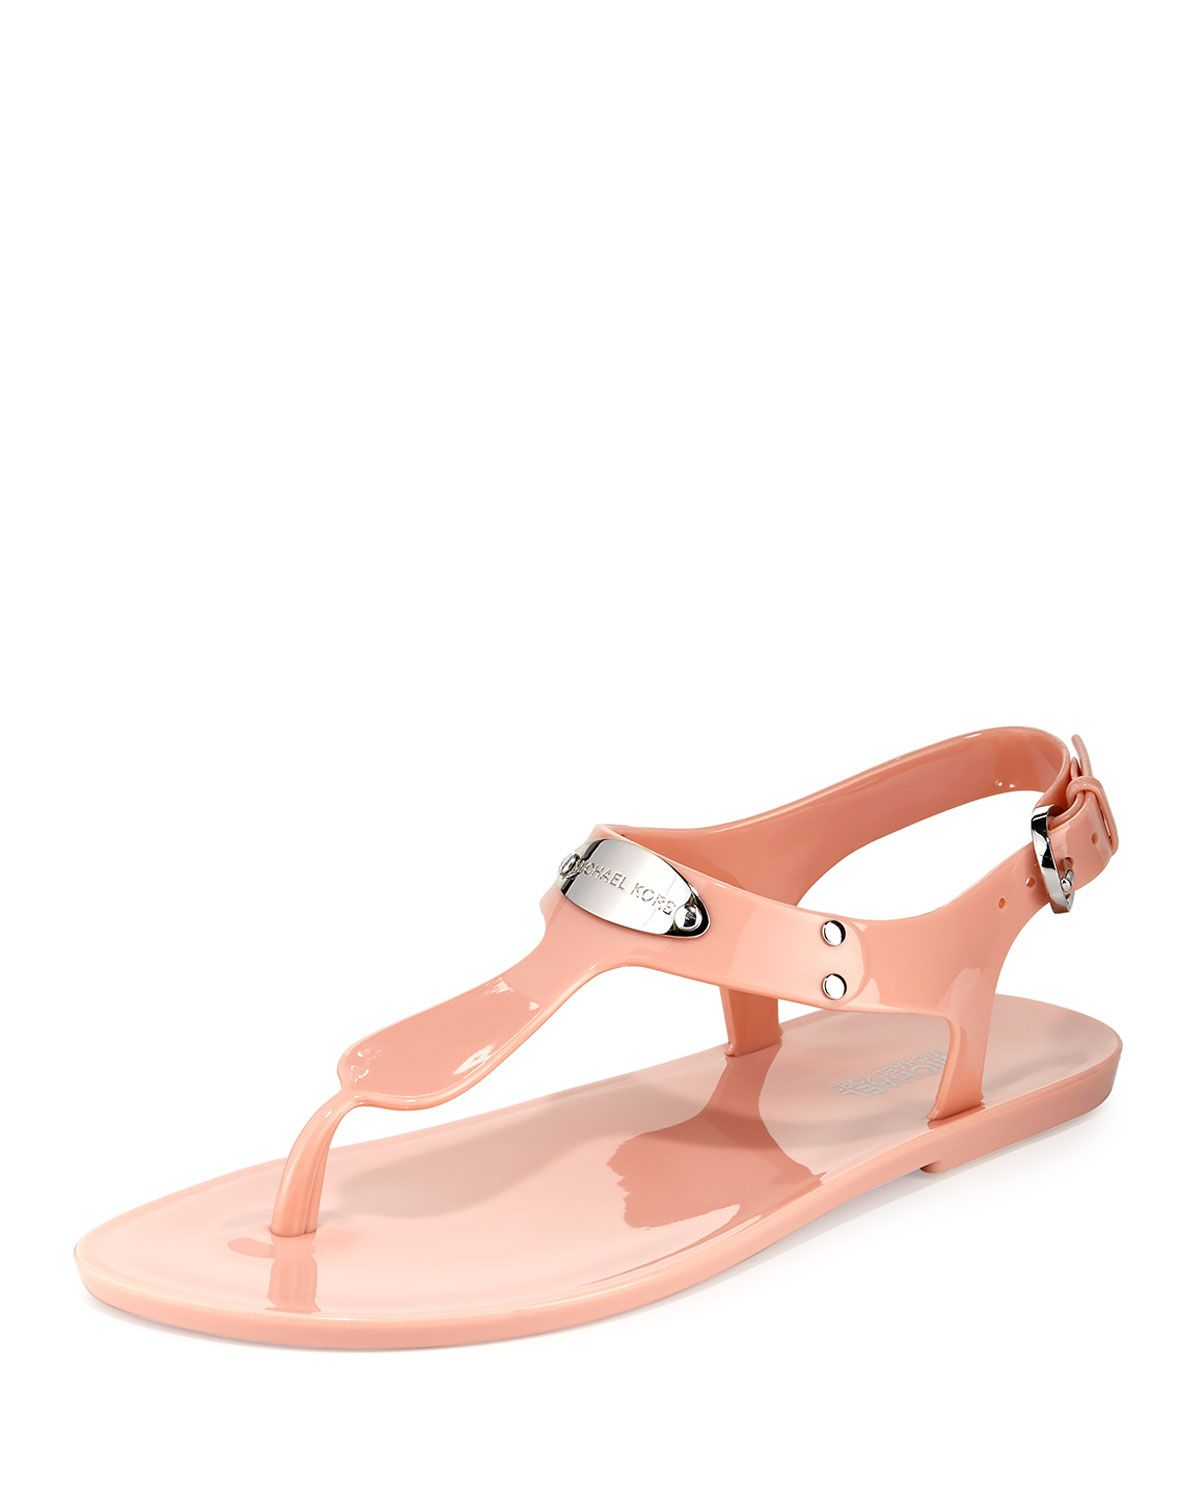 Nordstrom New Arrival Shoes